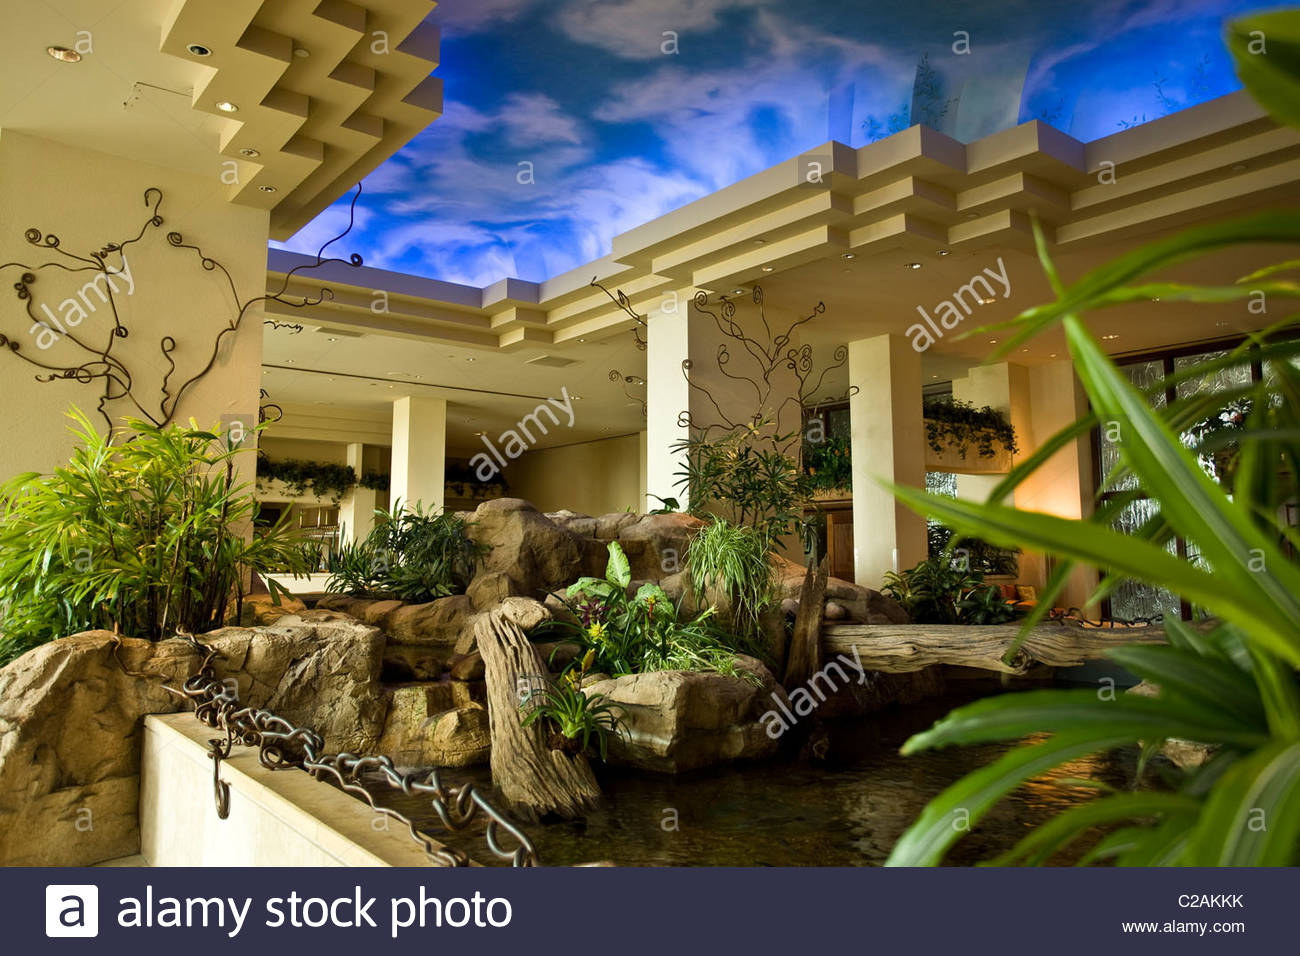 Moody Gardens Hotel Spa Convention Center Weddings Moody Gardens Hotel Spa  Convention Center Wedding Venue Picture Of Provided By Moody Gardens Hotel  ...